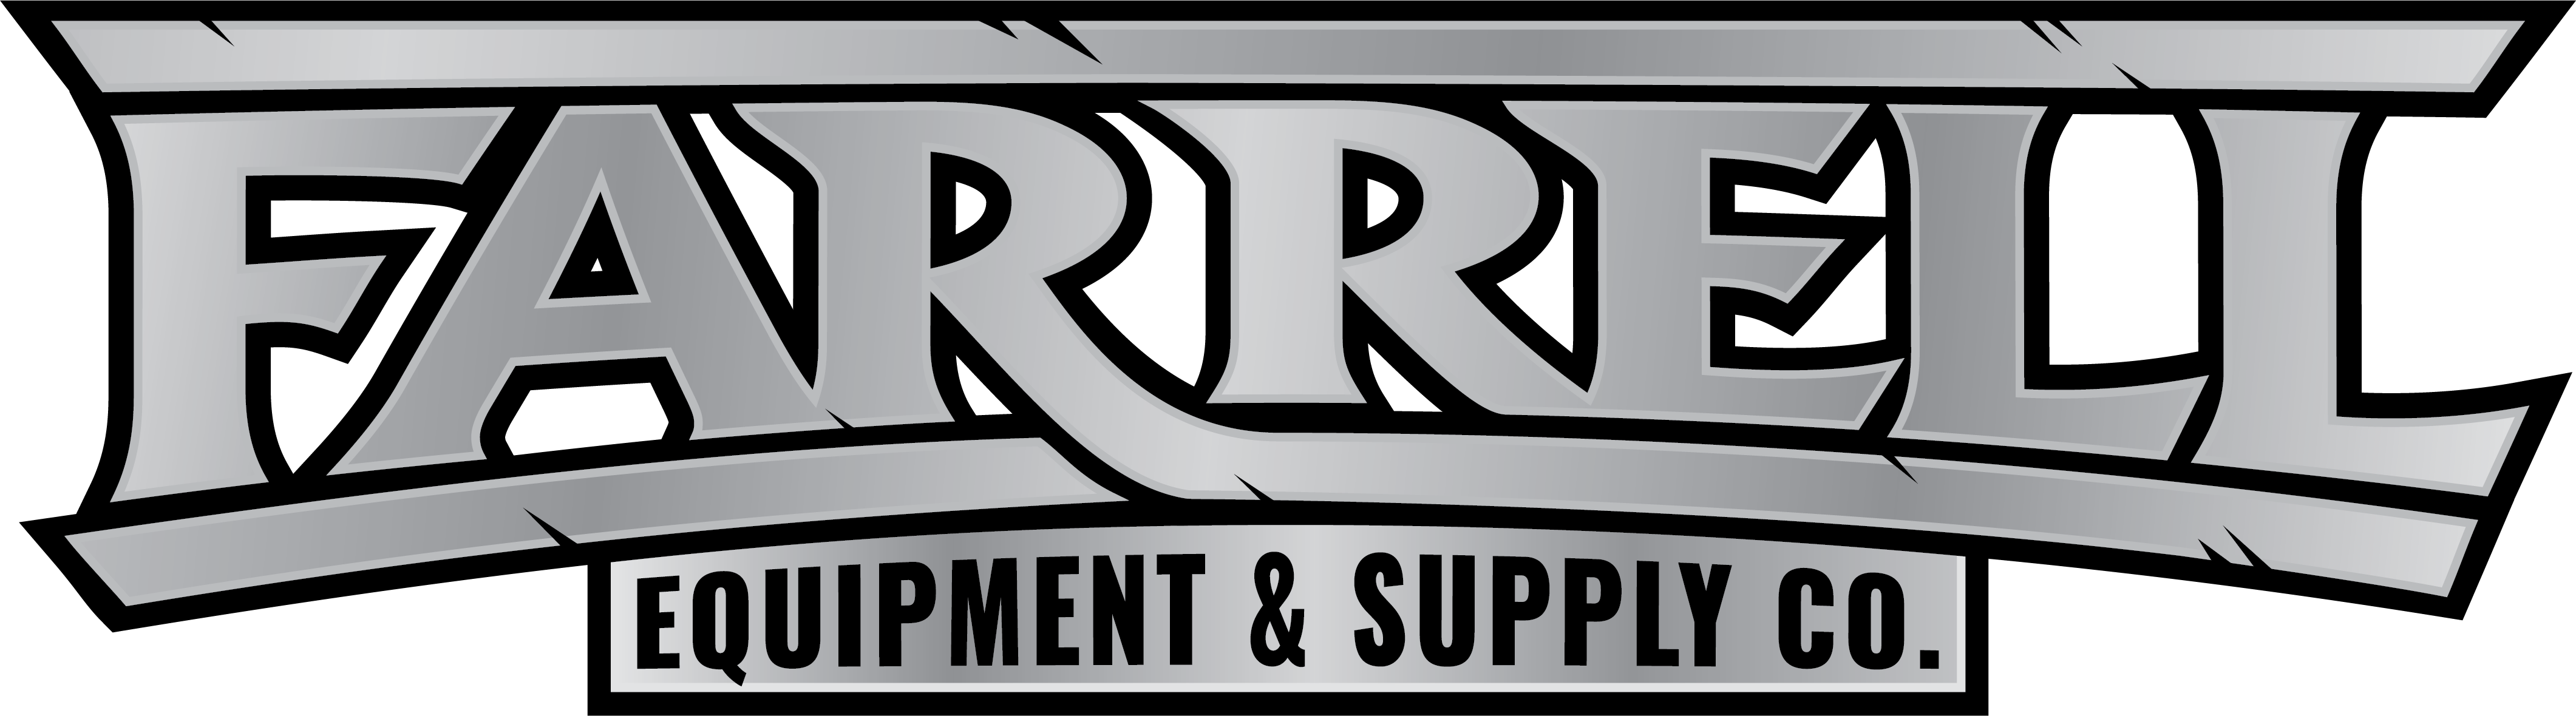 Farrell Equipment & Supply now distributes Minnich Manufacturing products in Wisconsin and Minnesota.